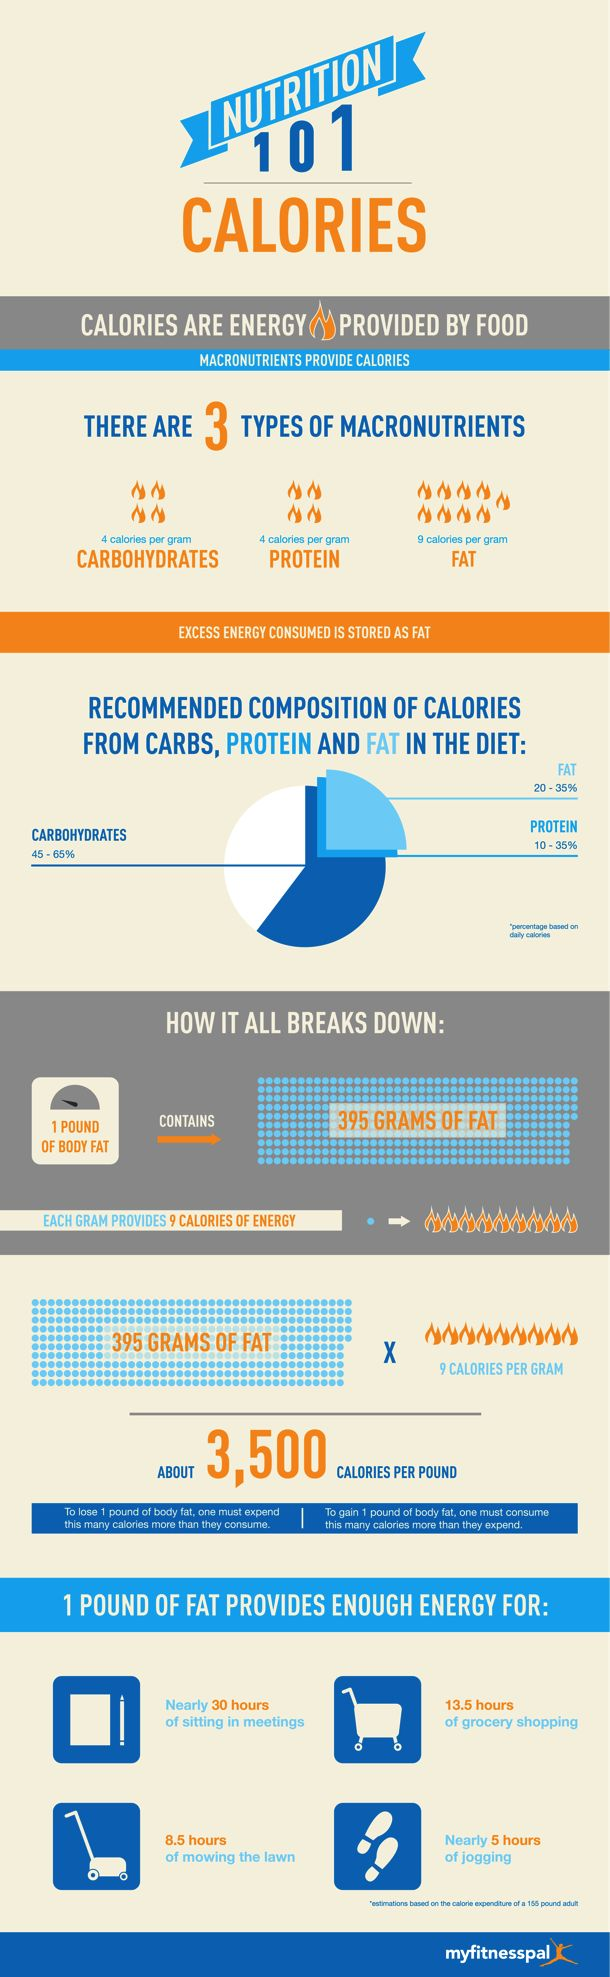 calories tracker app iphone